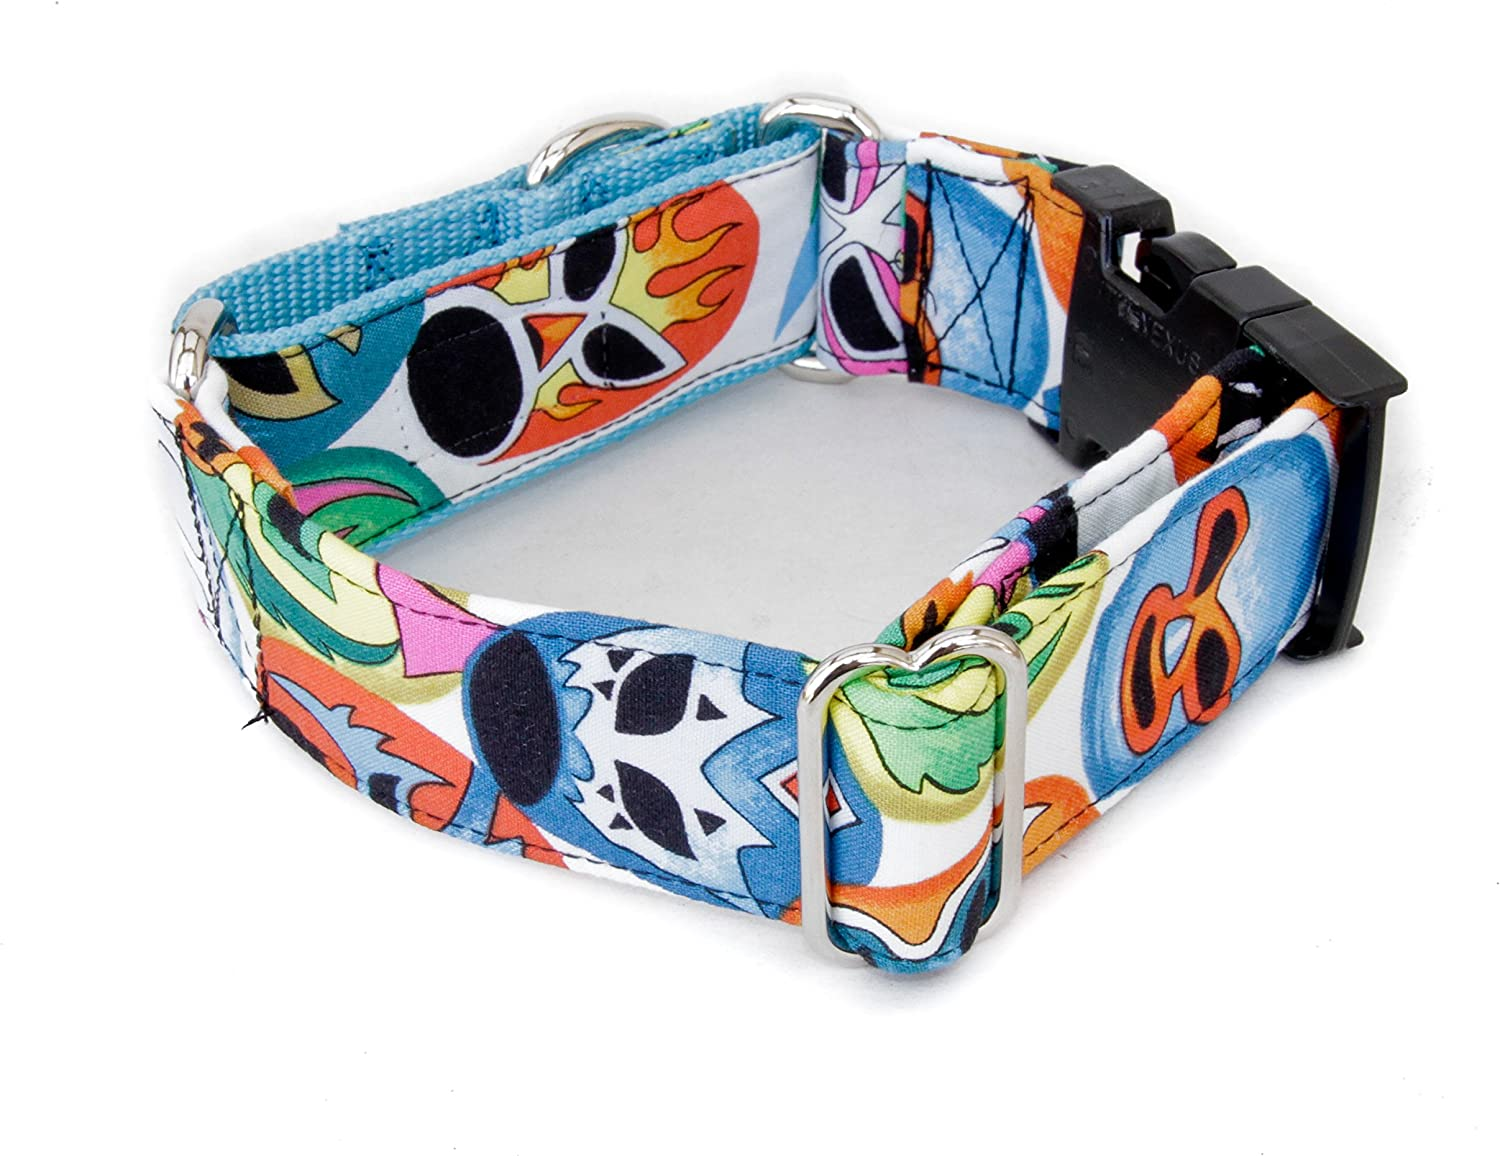 Caninus Collars Lucha Libre Wrestling Dog - Special price for a limited time Wid 1.5